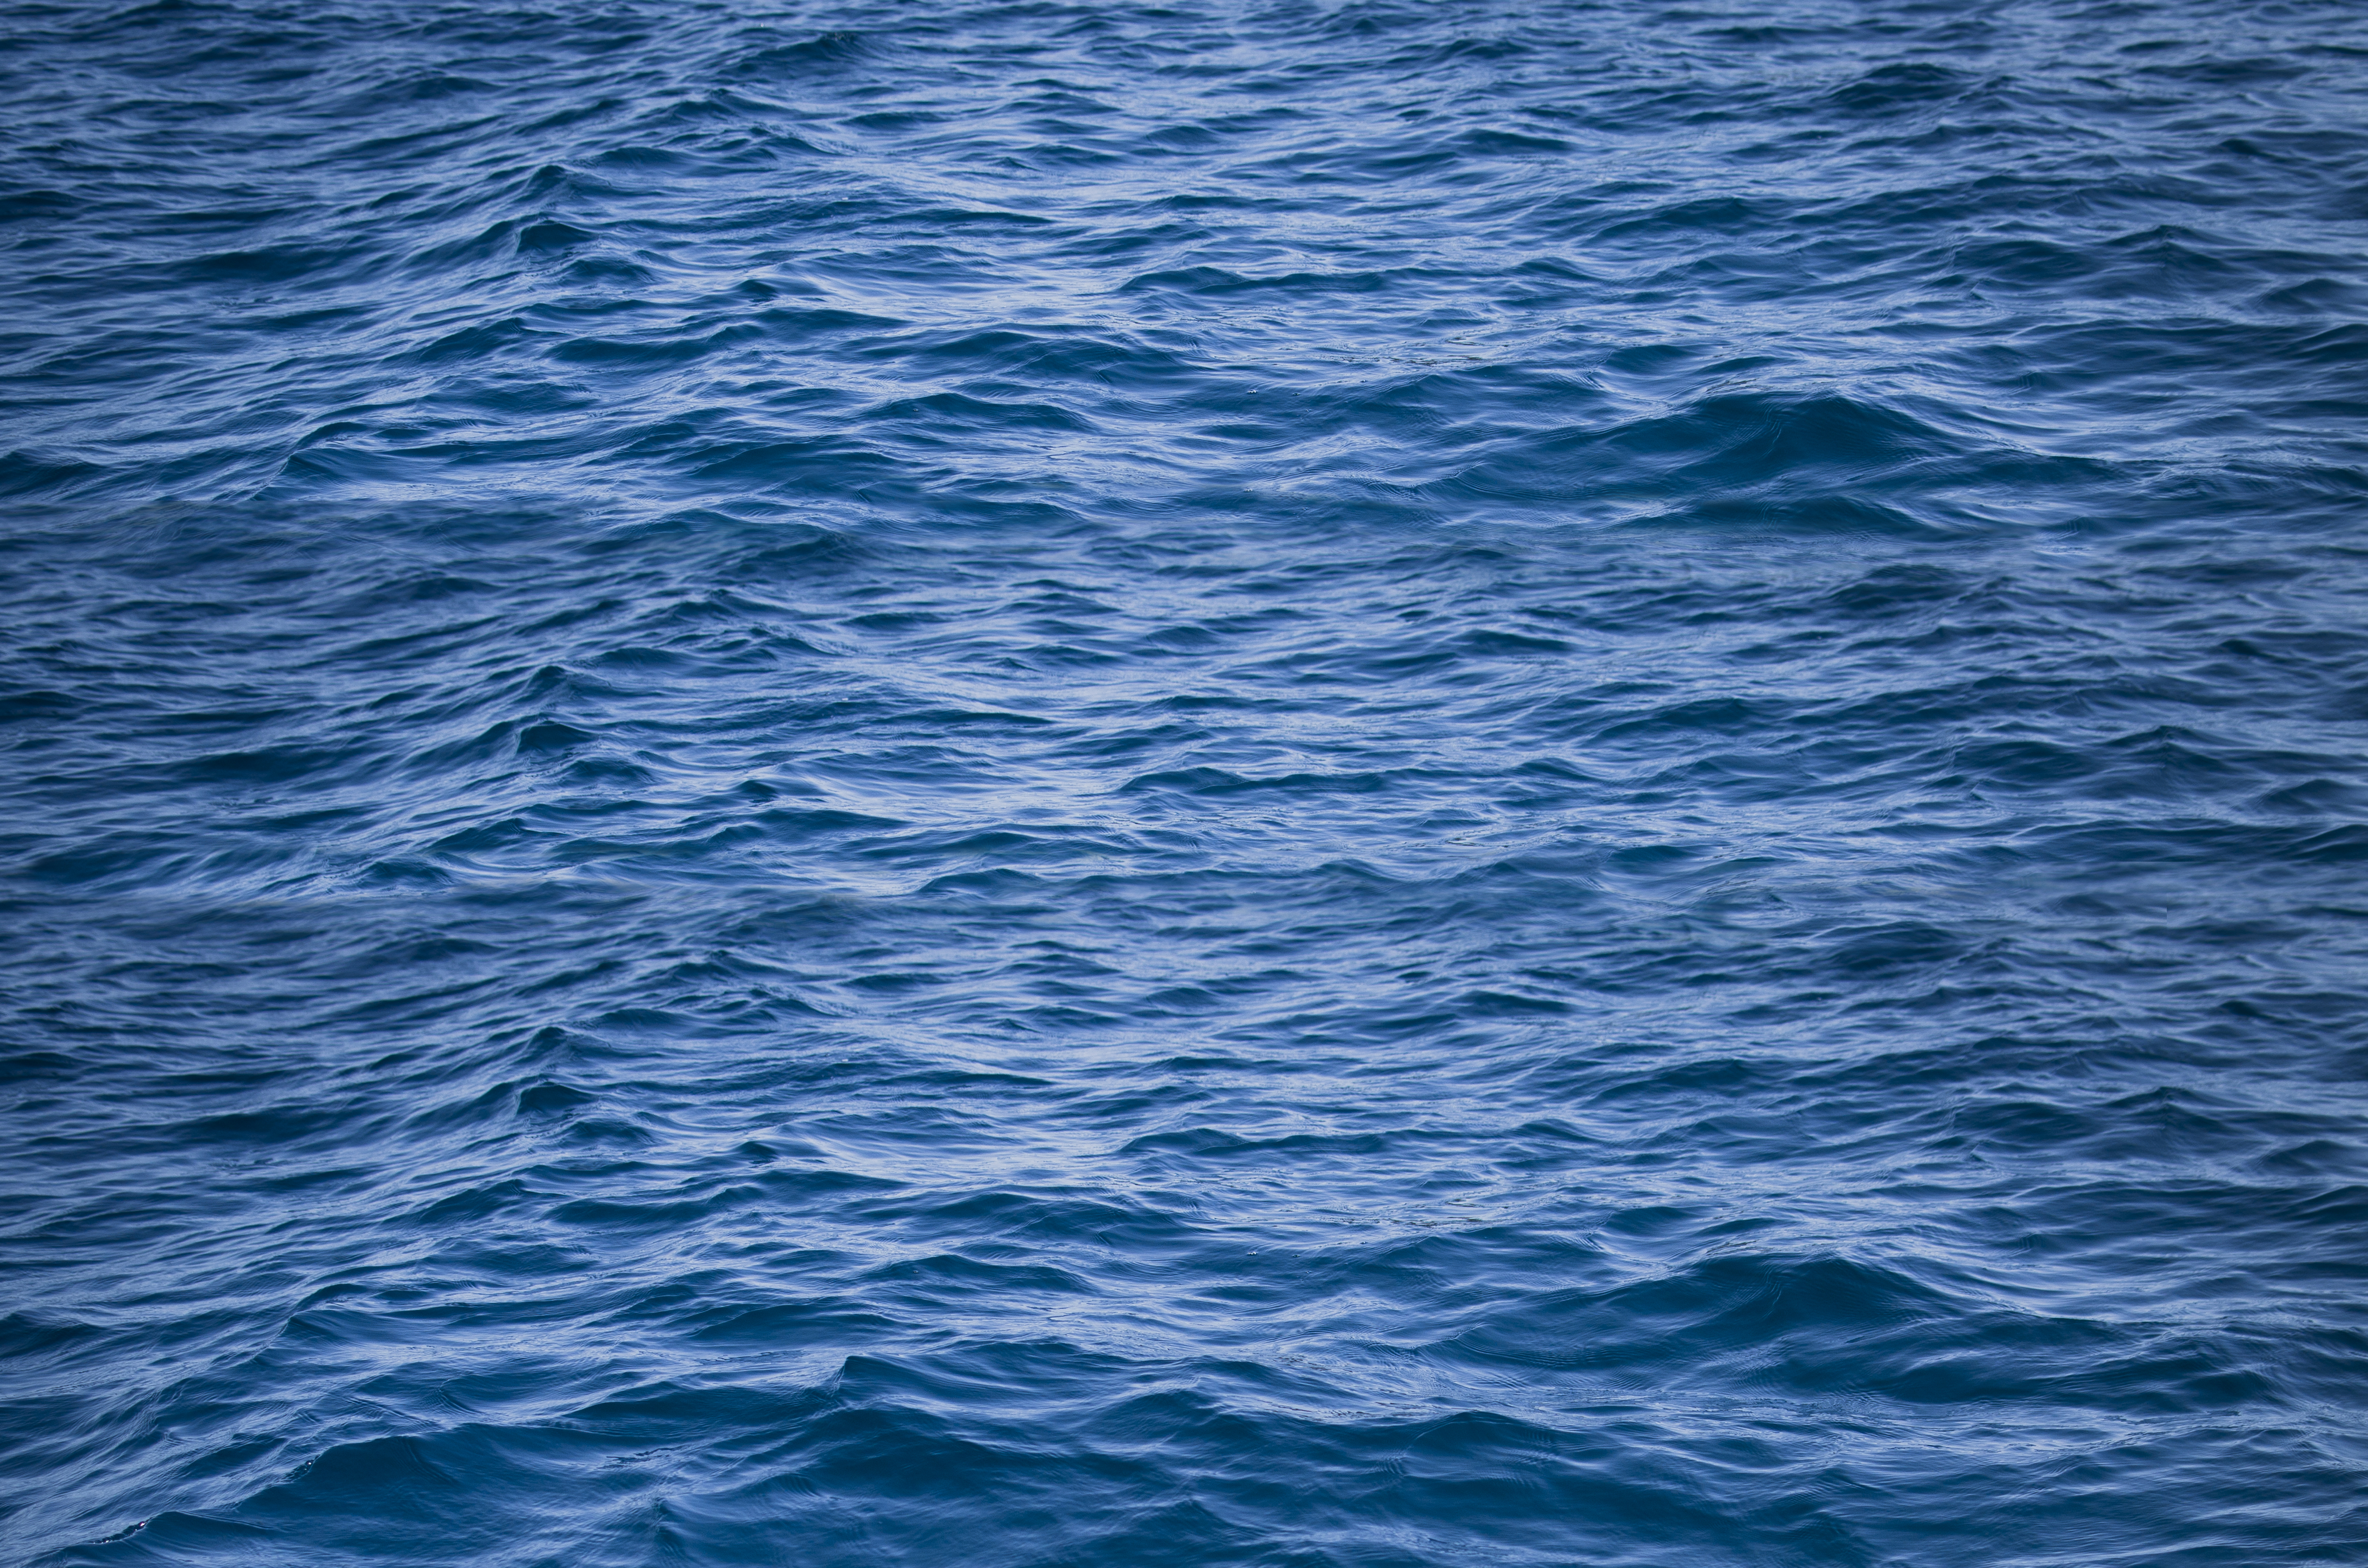 Sea wave abstract texture photo